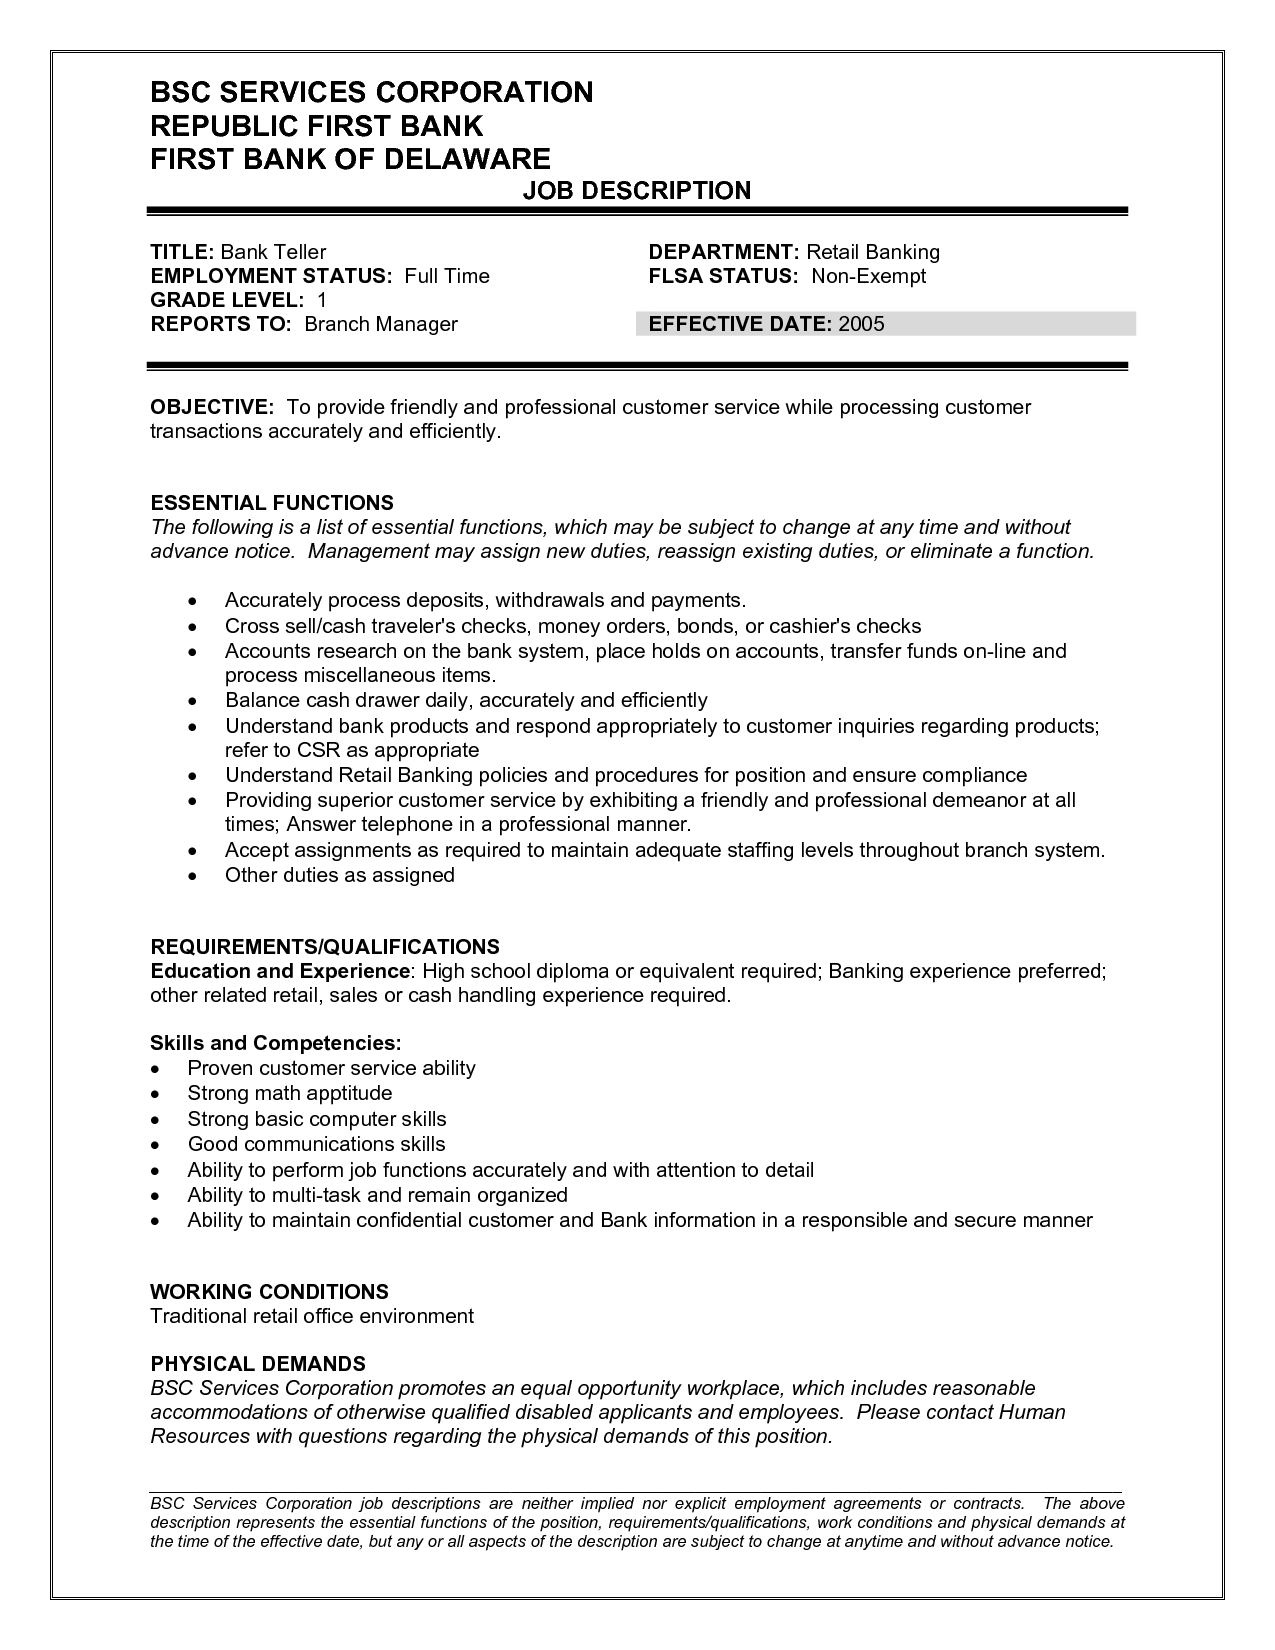 best bank teller resume samples job description resume - Bank Teller Resume Examples